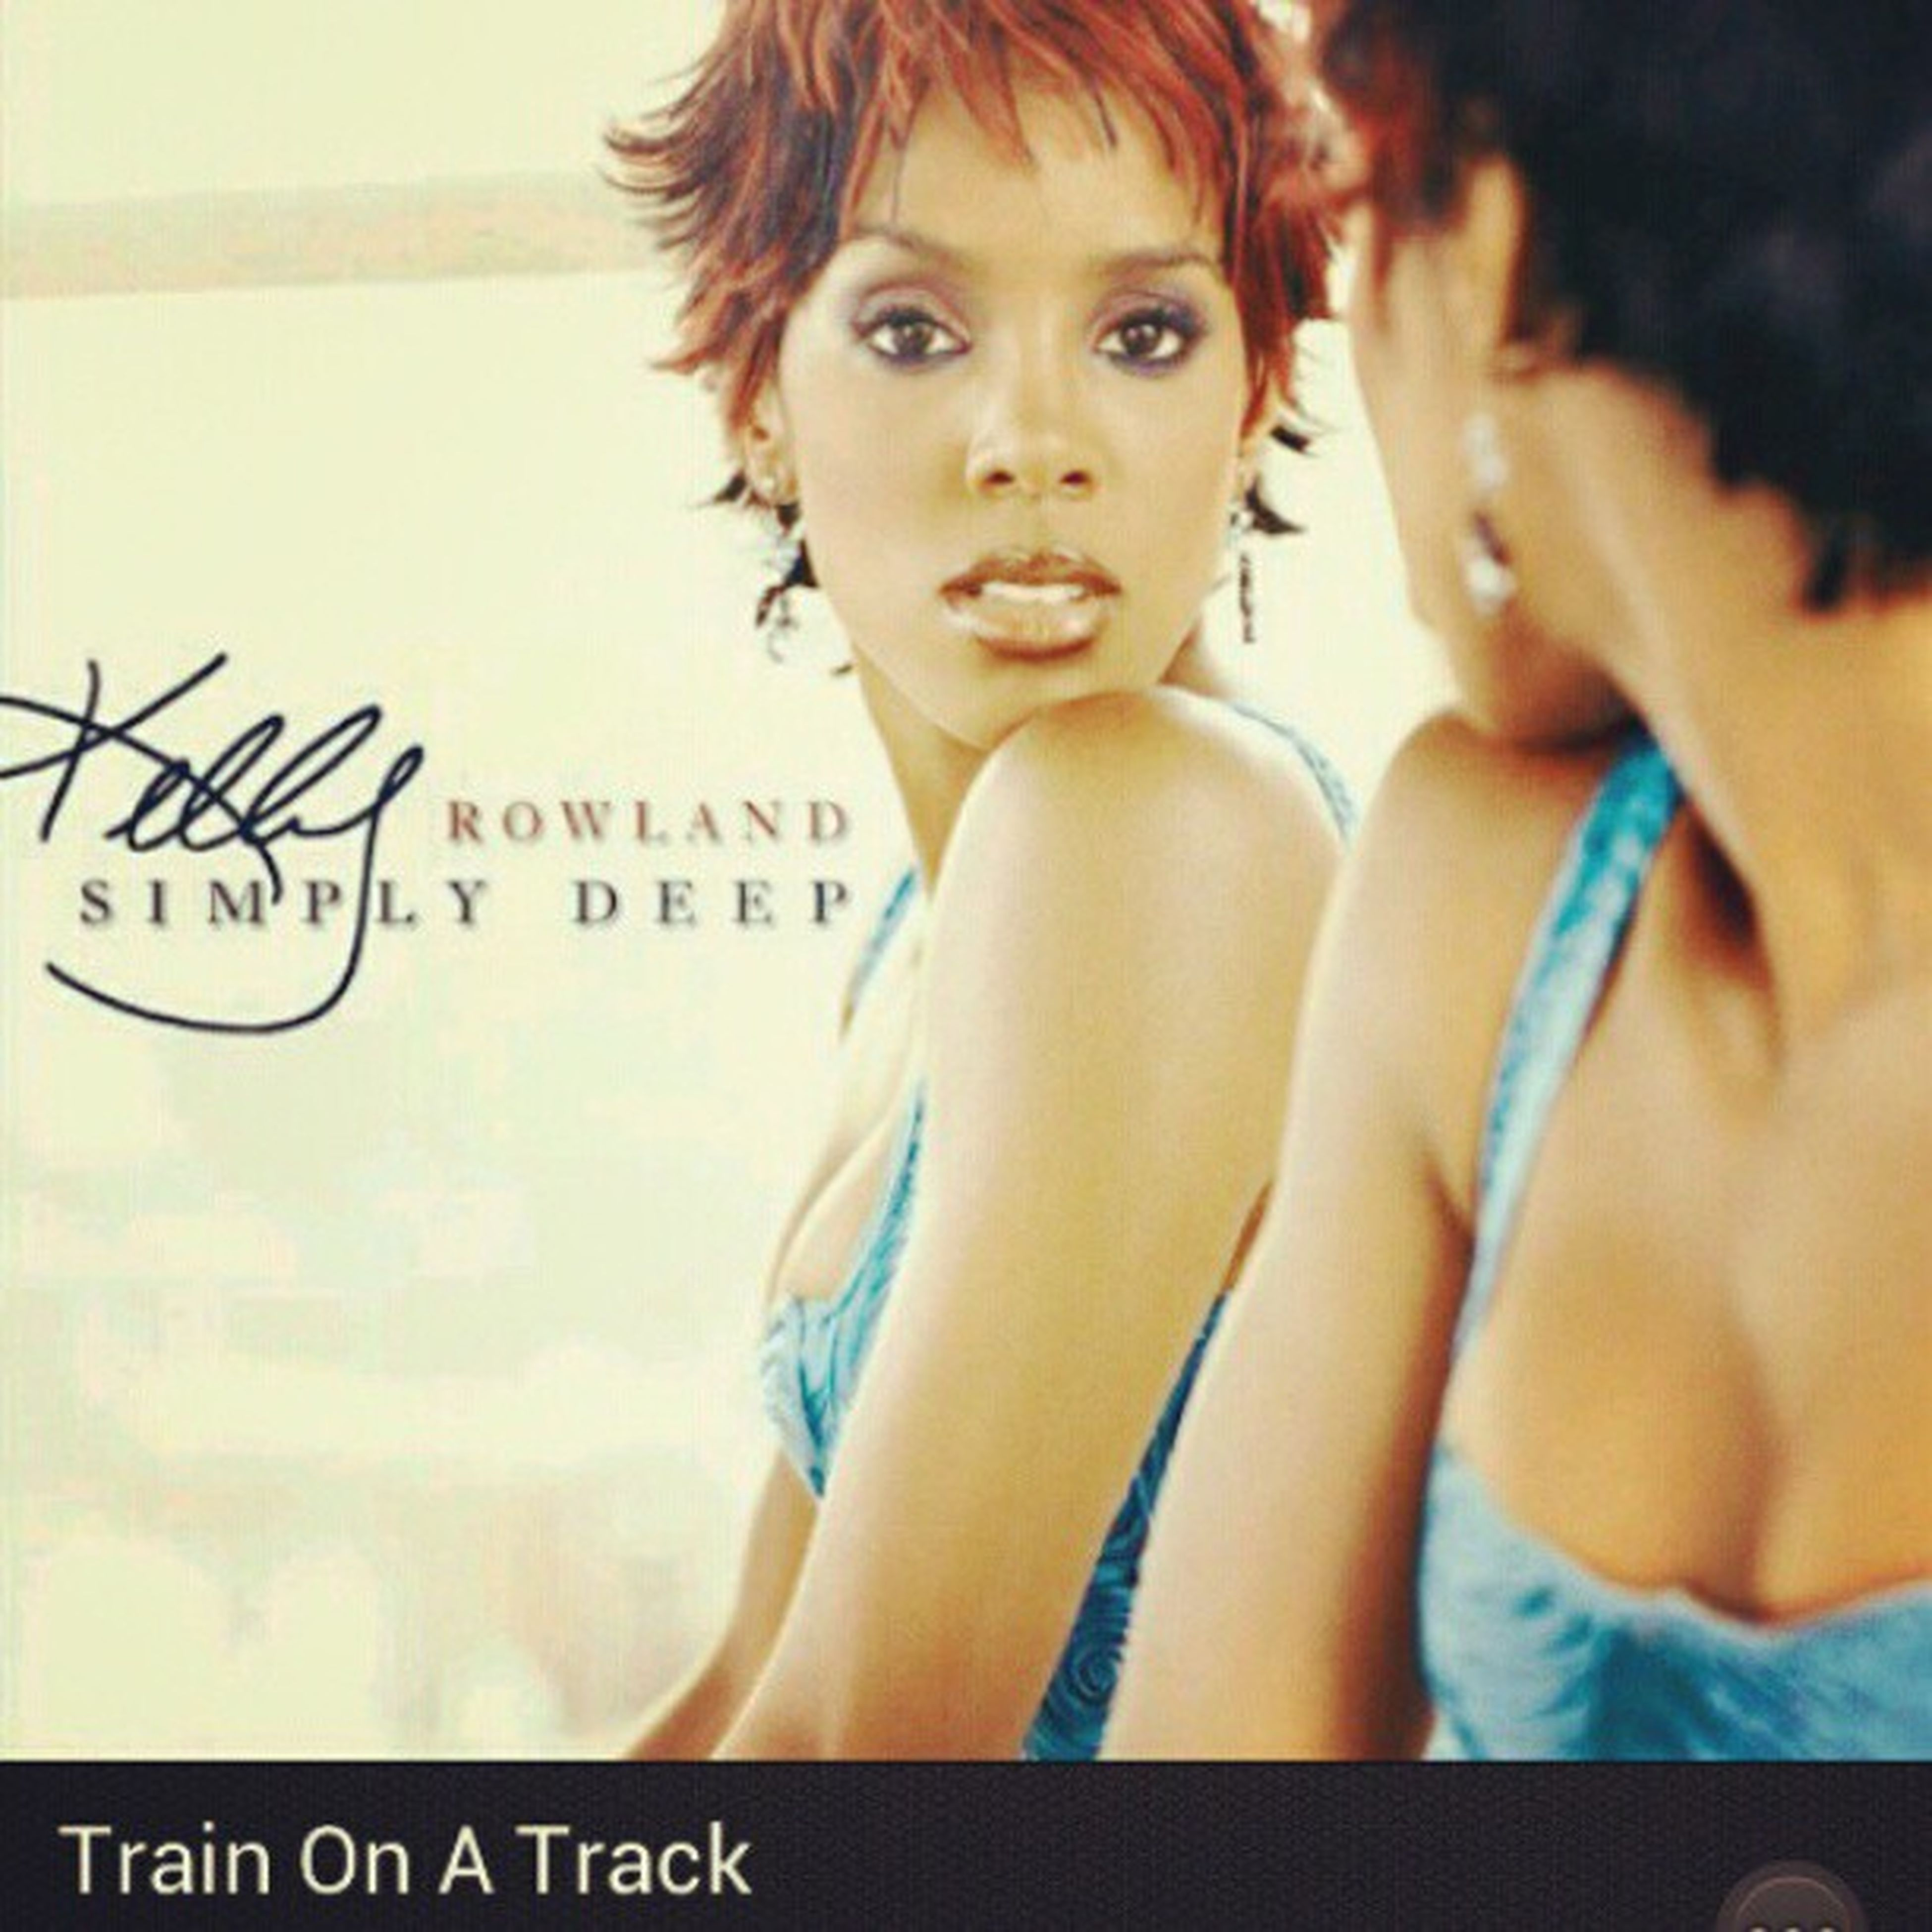 Downloaded this last night... One of my Favoritecds from years ago. Still just as good. Kellyrowland Simplydeep